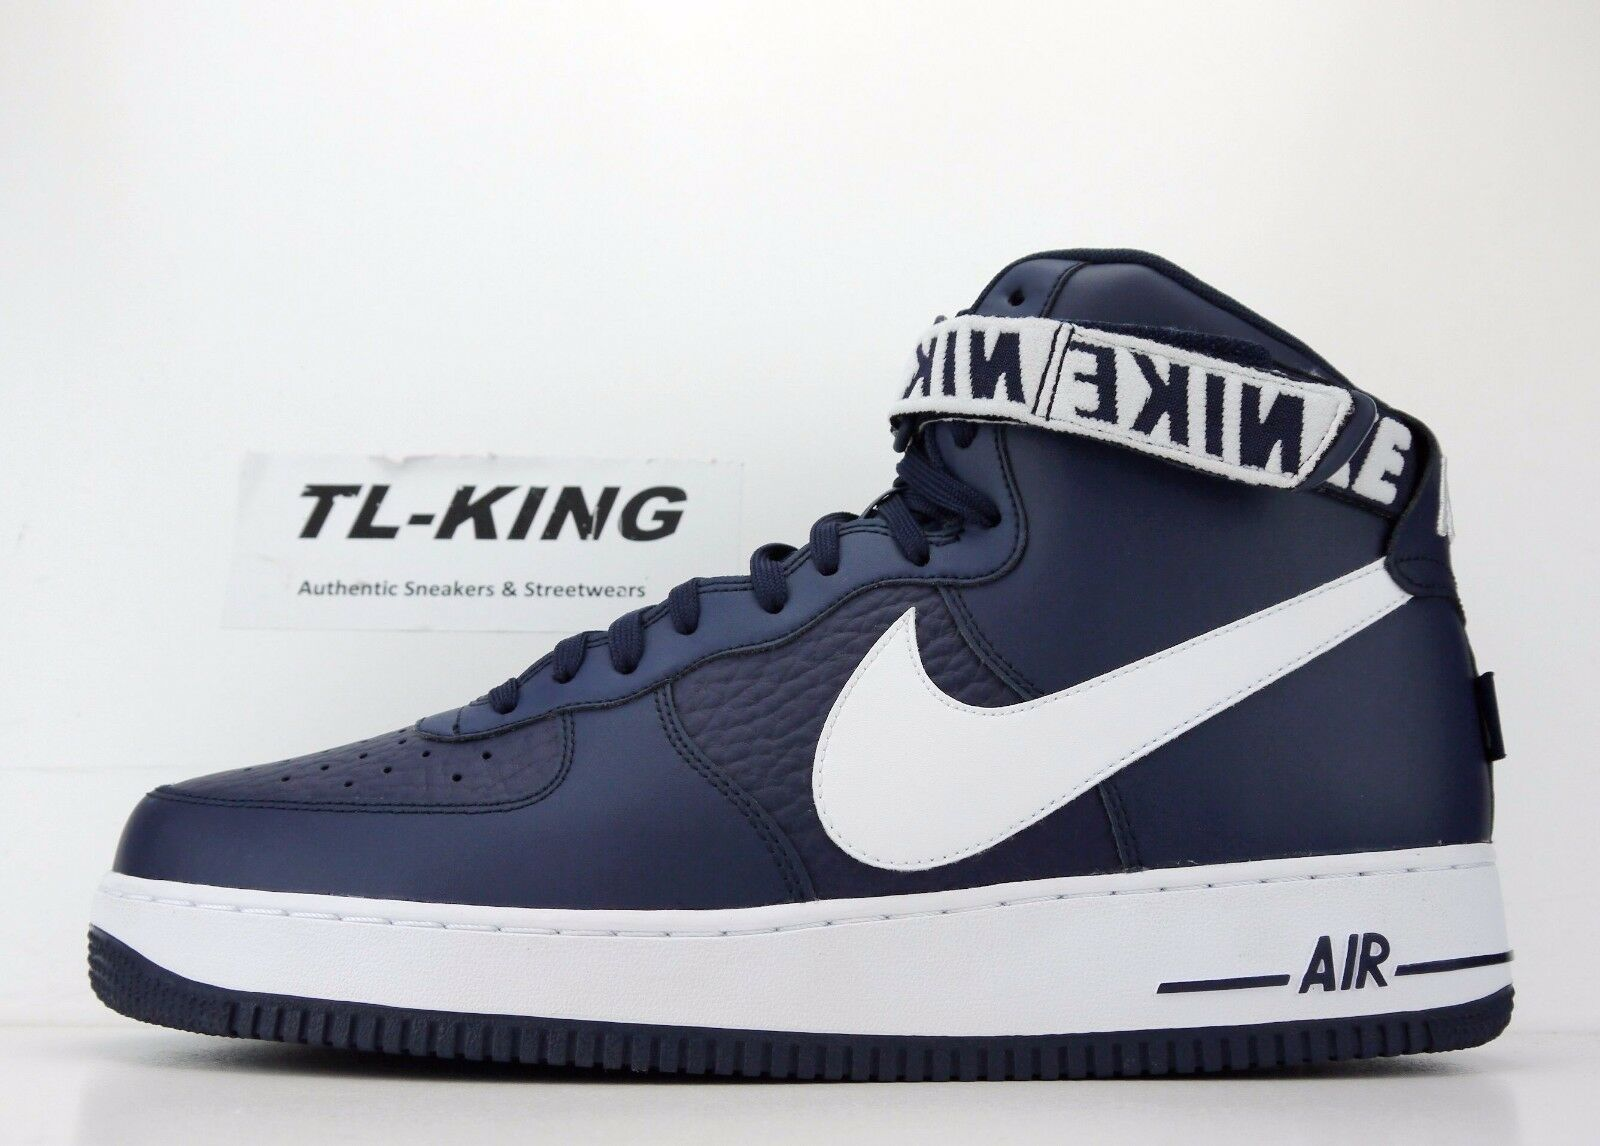 nike air force - 1 hohe '07 nba - force packung großen swoosh college navy weiße 315121-414 sein 89c17b